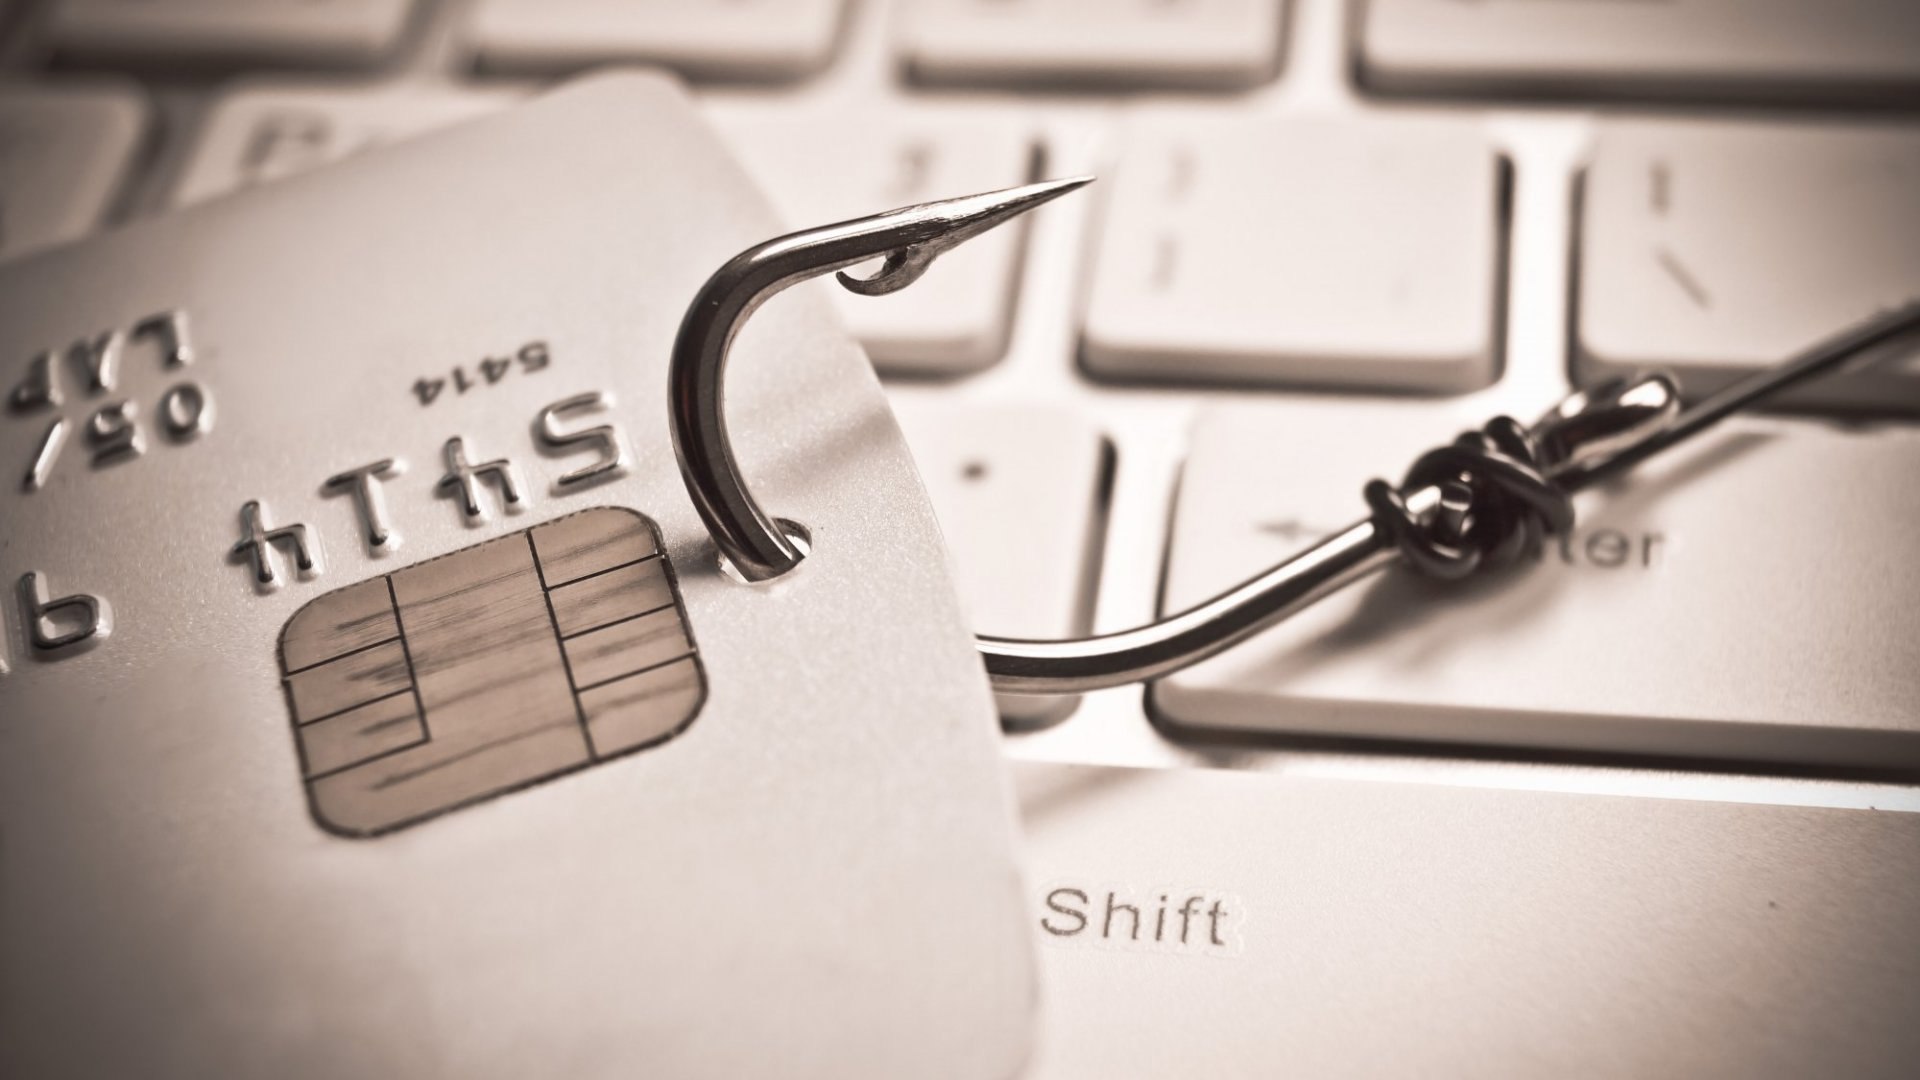 Credit Card Breach At Hotels From Several Major Chains: What You Need To Know